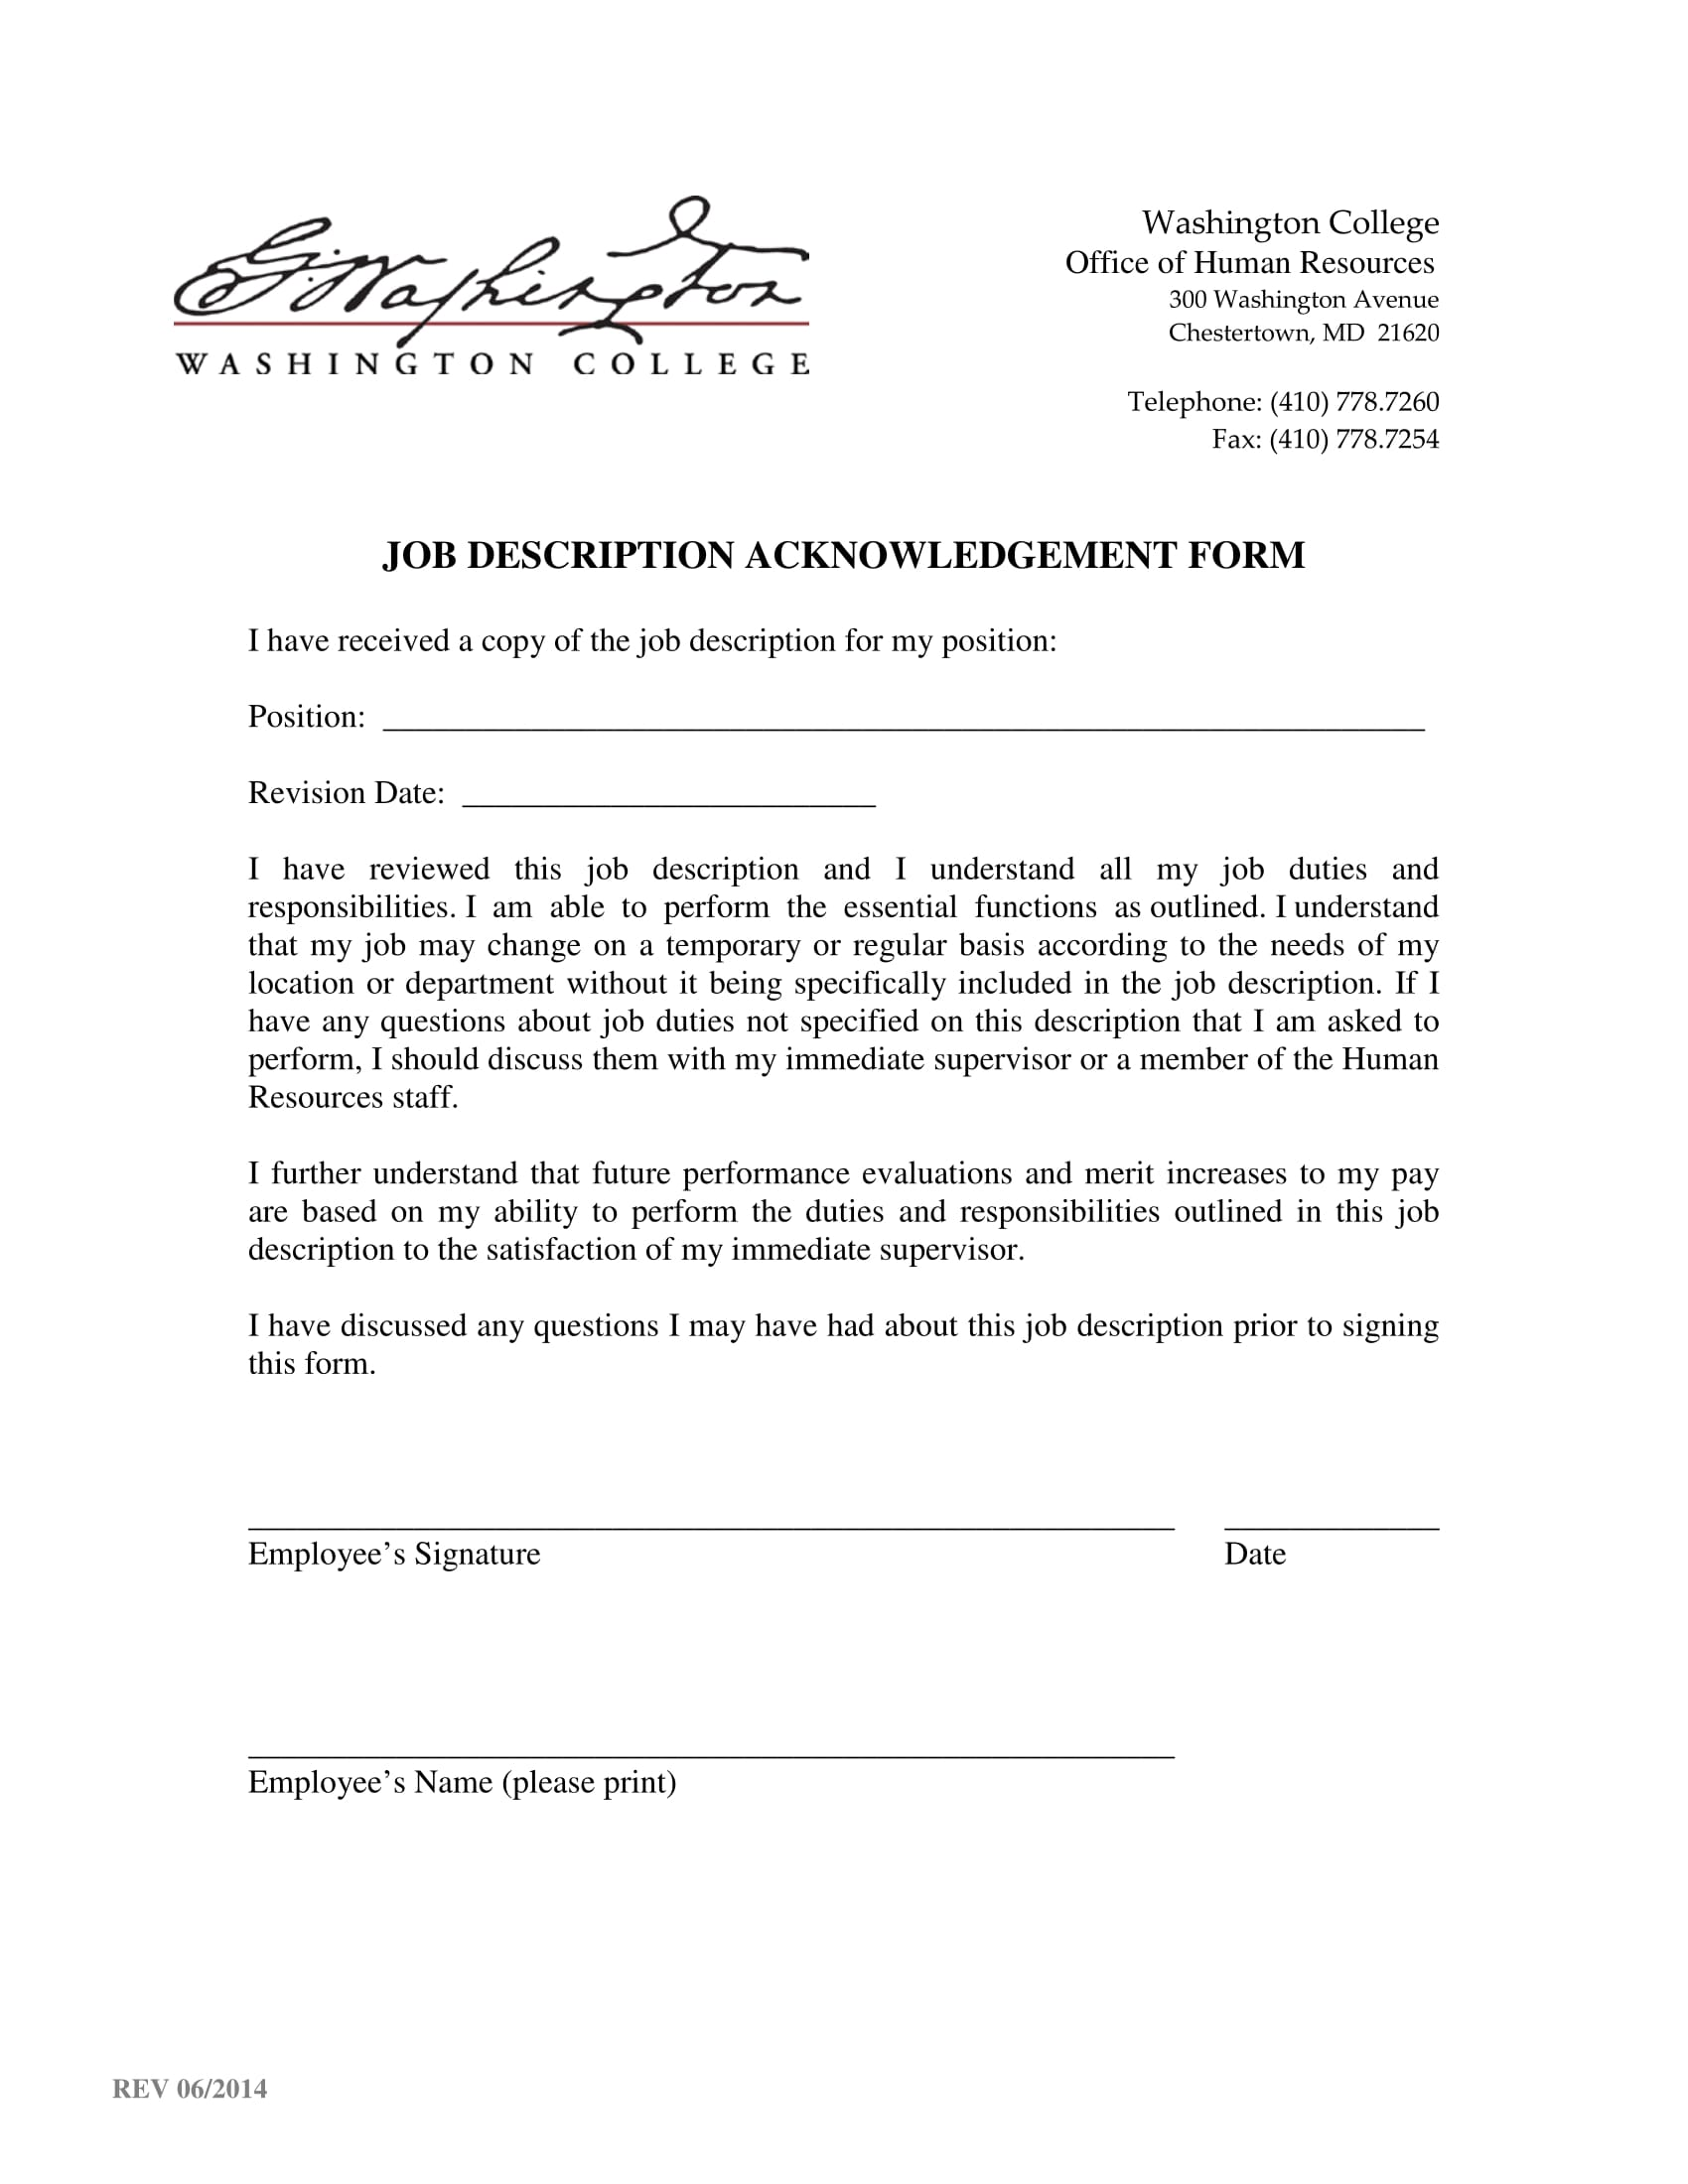 job description acknowledgement form 1